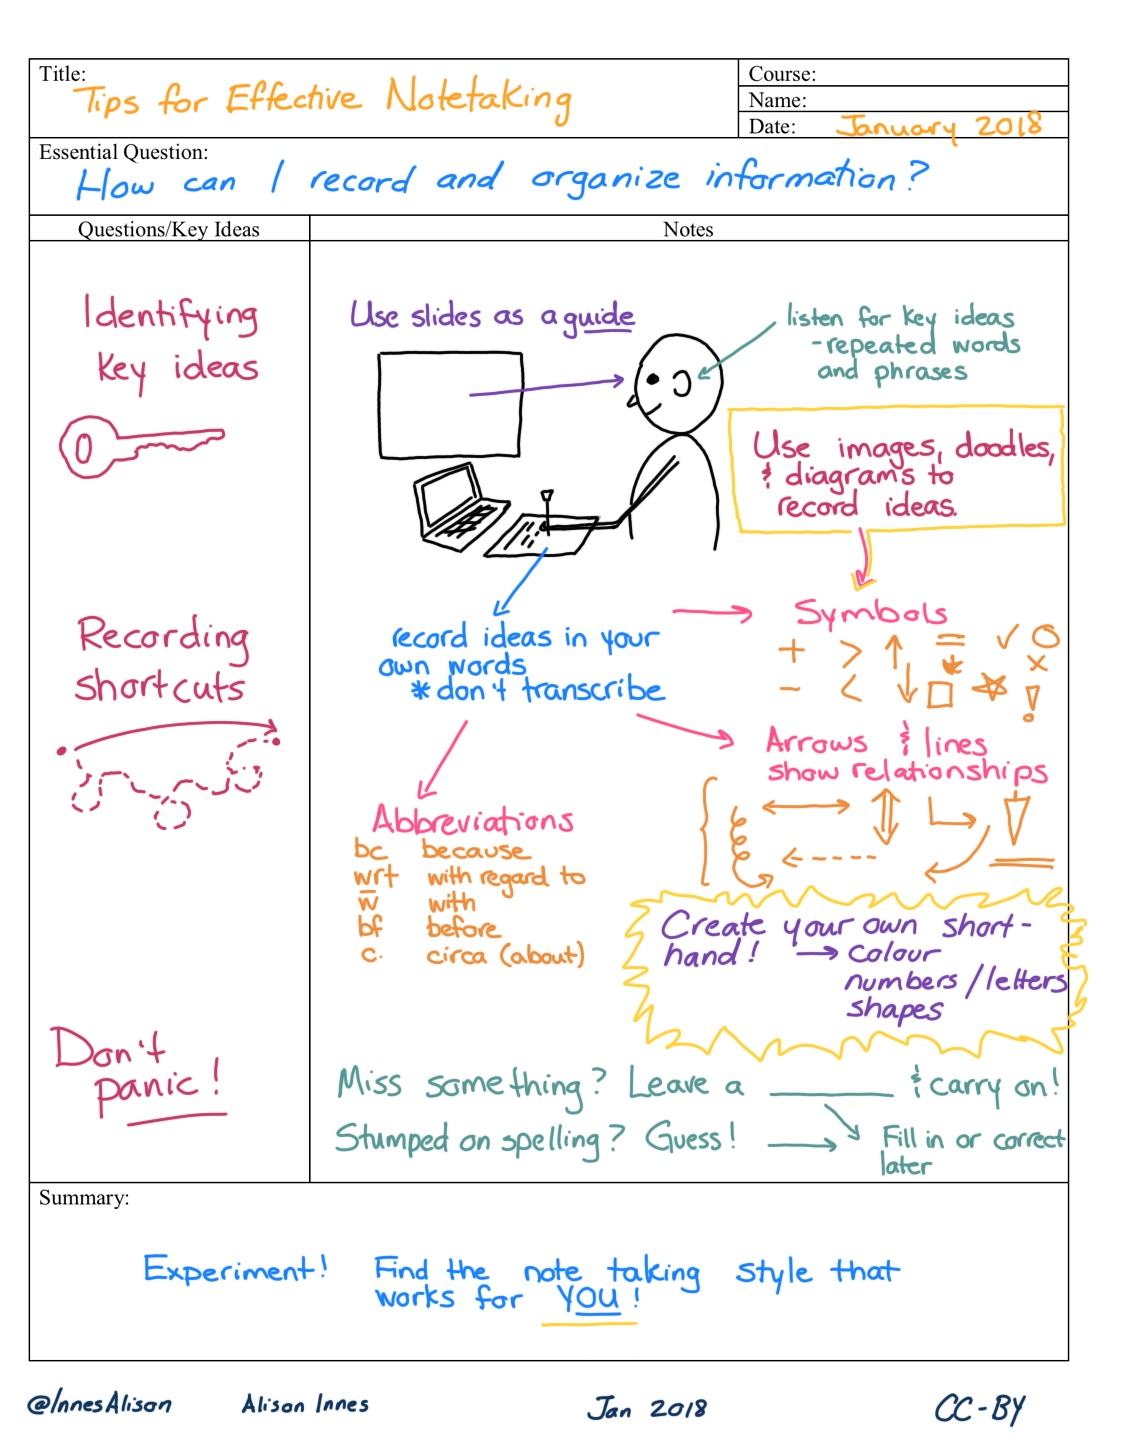 Note_Taking_Tips